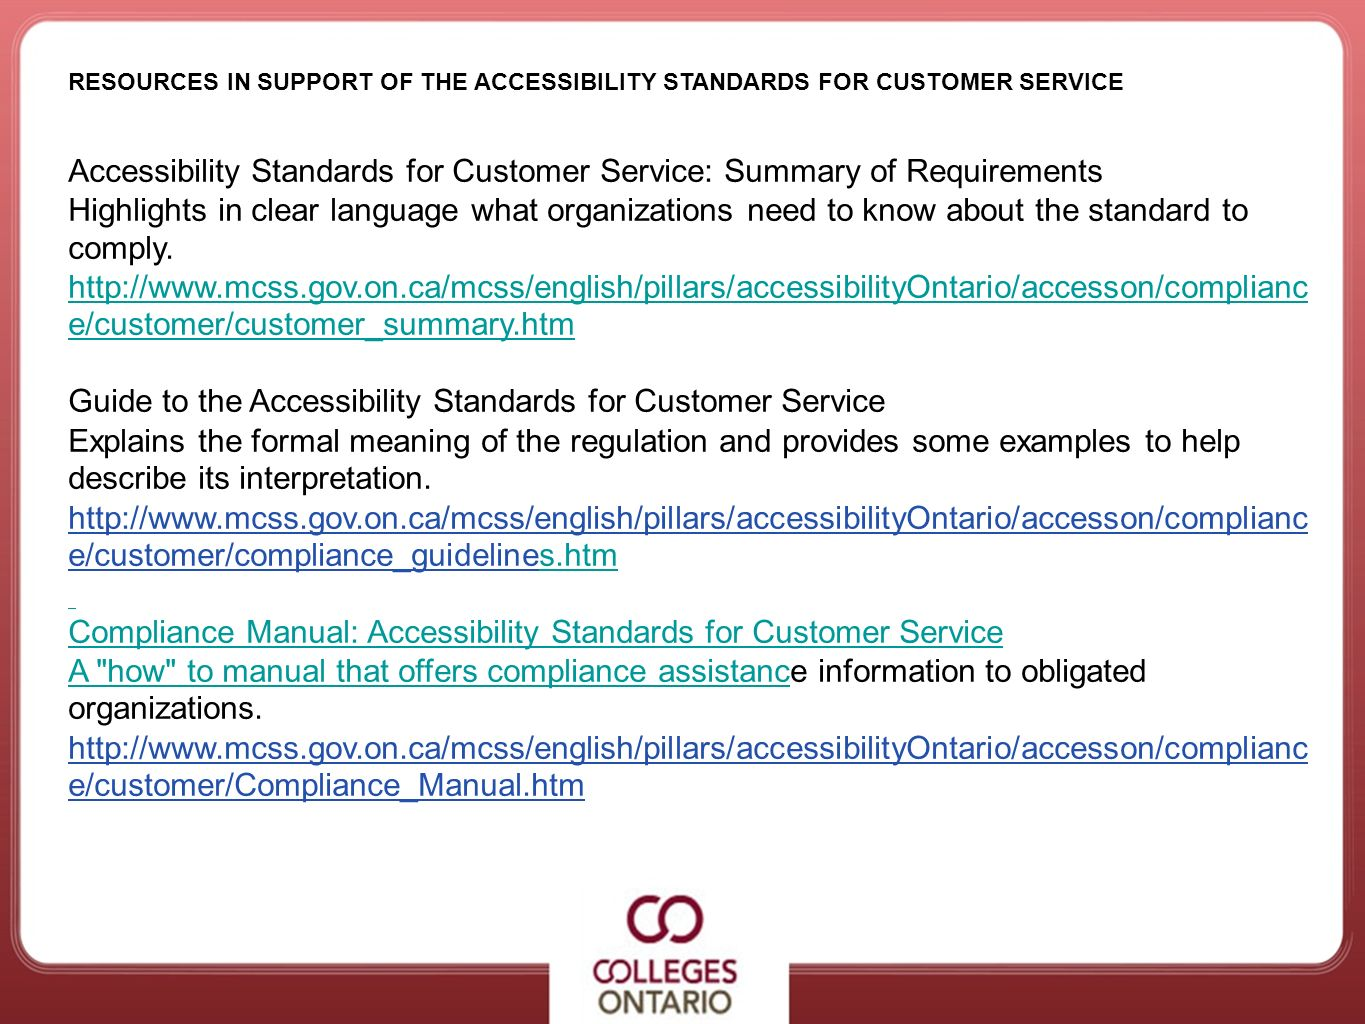 Accessibility Standards for Customer Service: Summary of Requirements